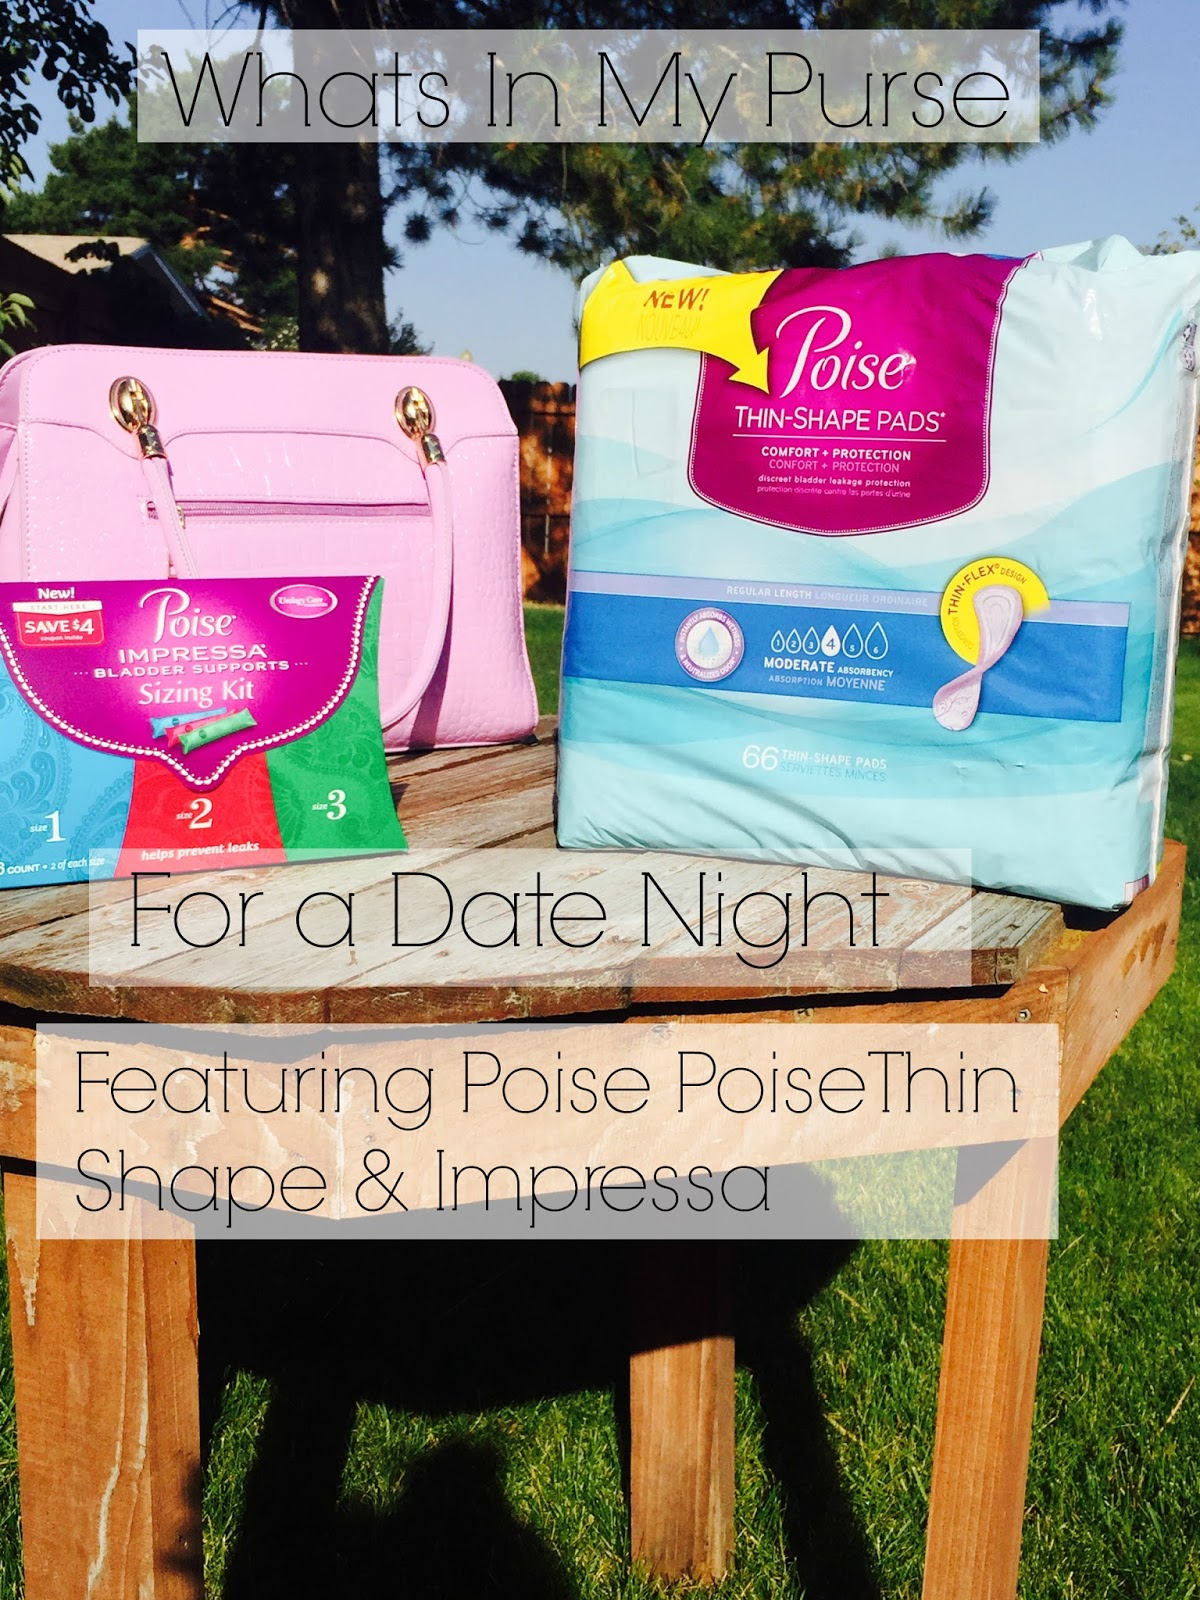 Poise thin-shape pads, impressa, poise impressa, poise impressa bladder support, poise stop leakage,  whats in my bag, whats in my bag for date night,